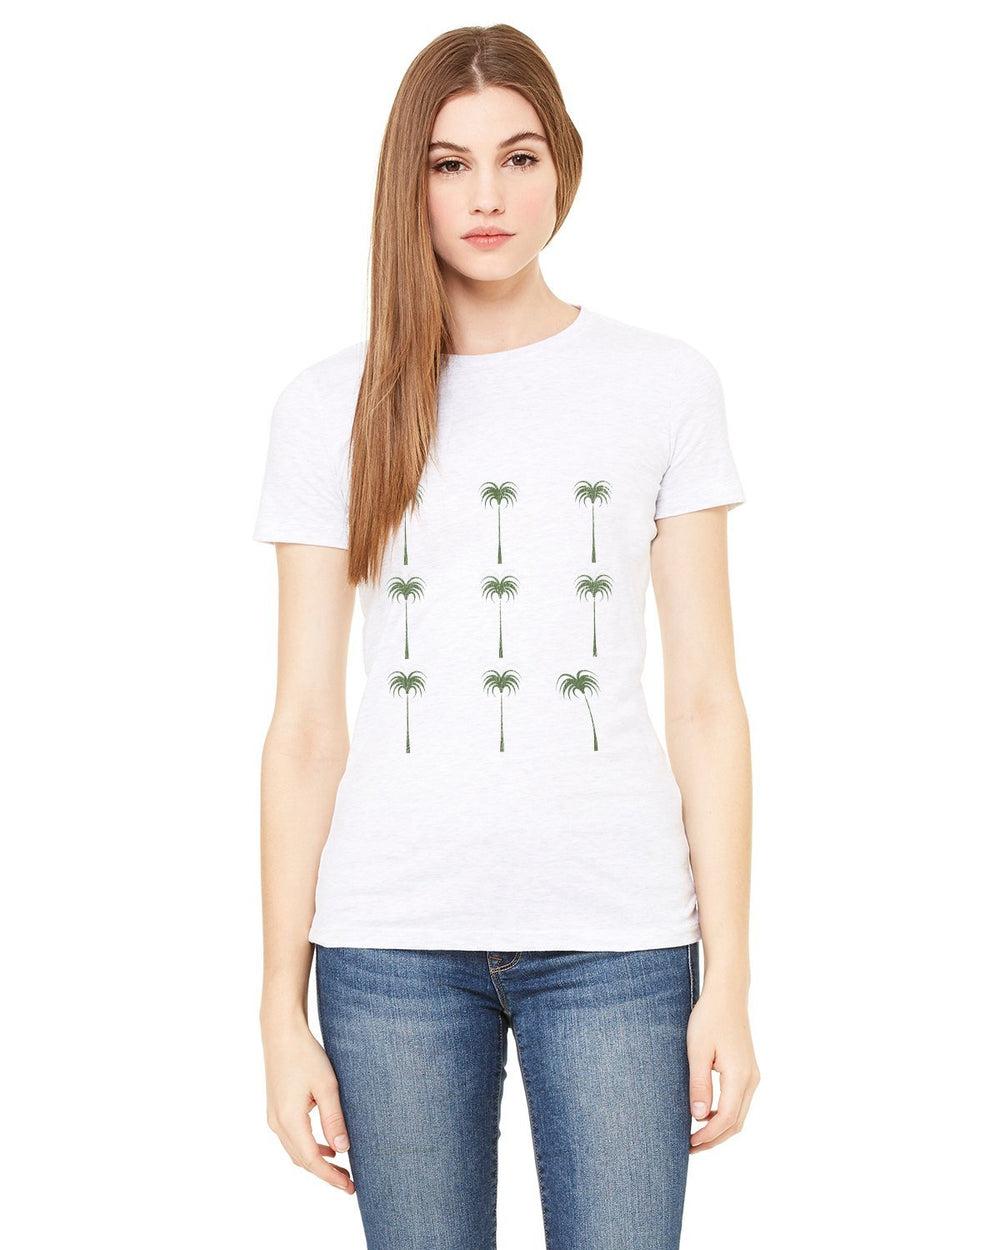 Palms Forever Ladies T-shirt-nelsonmakesart